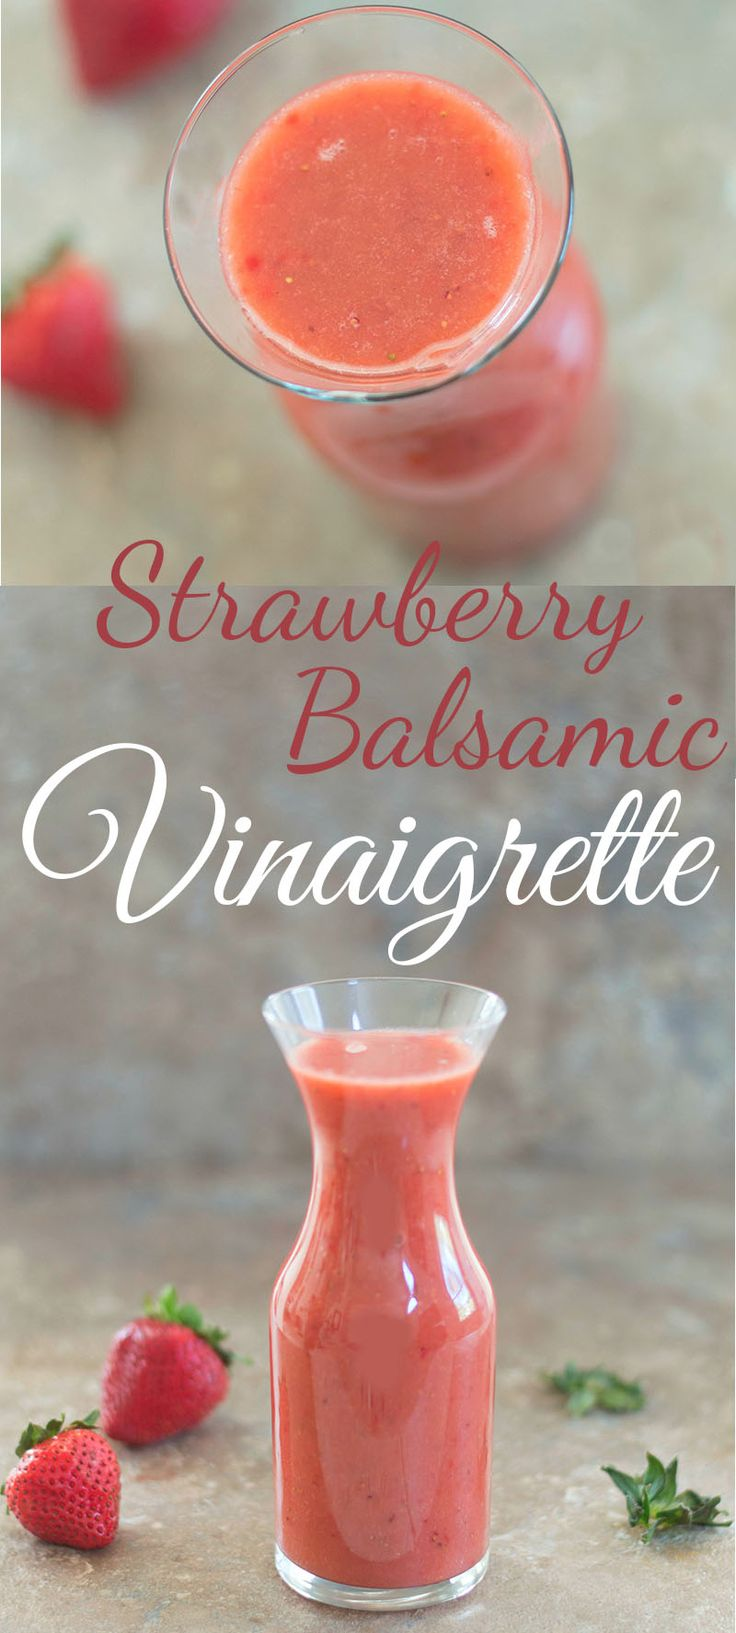 Easy strawberry balsamic vinaigrette made using only 4 ingredients. Takes less than 10 minutes to make and perfect healthy dressing for lunch or dinner salad recipe